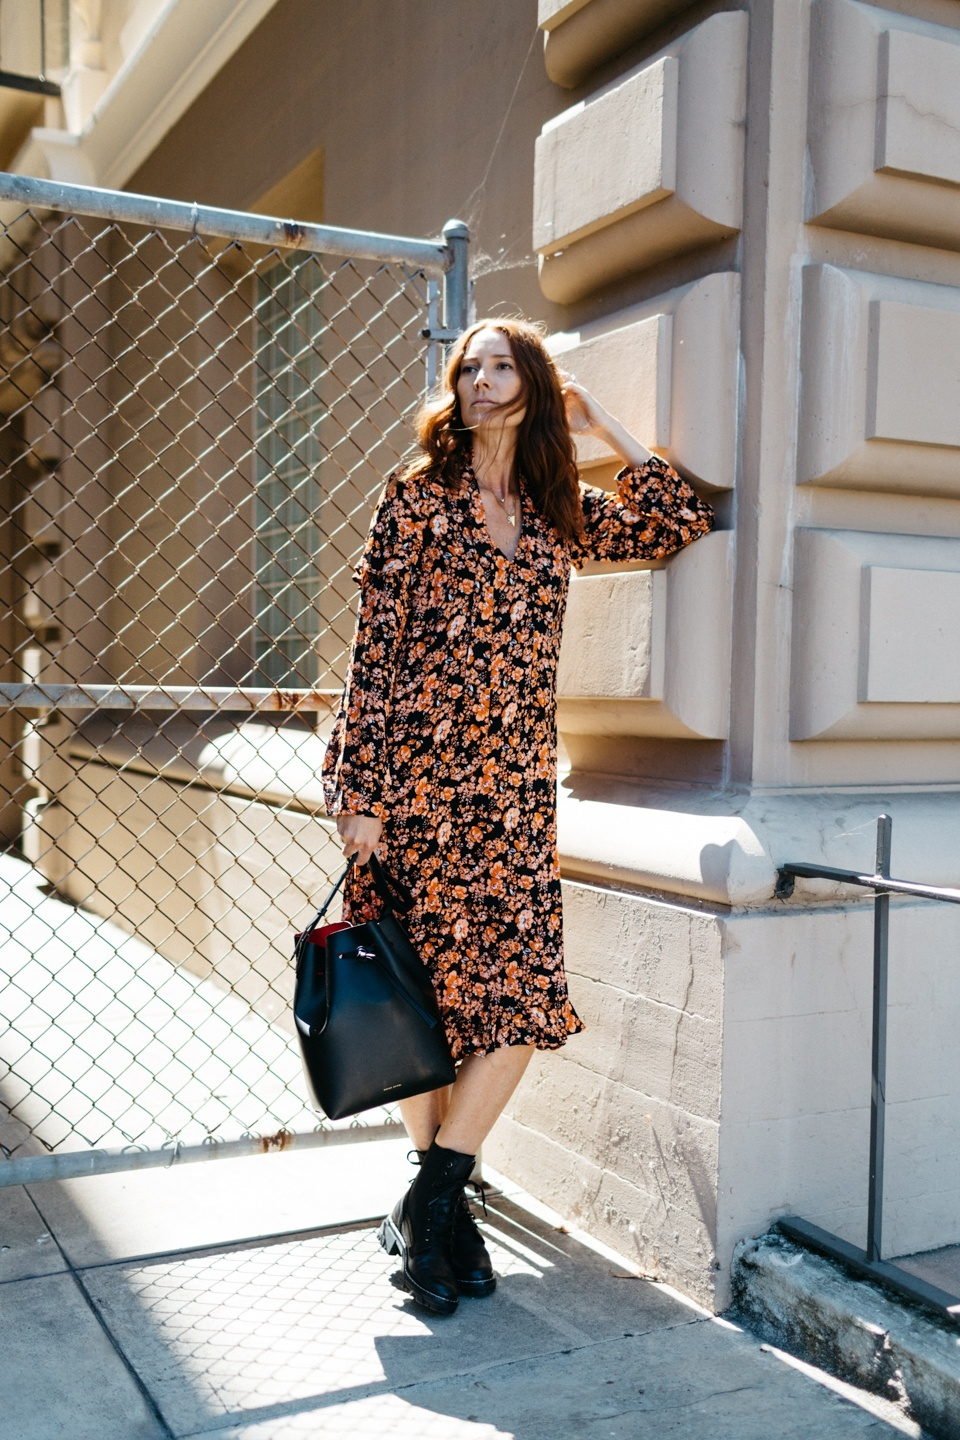 Moody Floral Dresses That Will Liven Up Your Fall Wardrobe